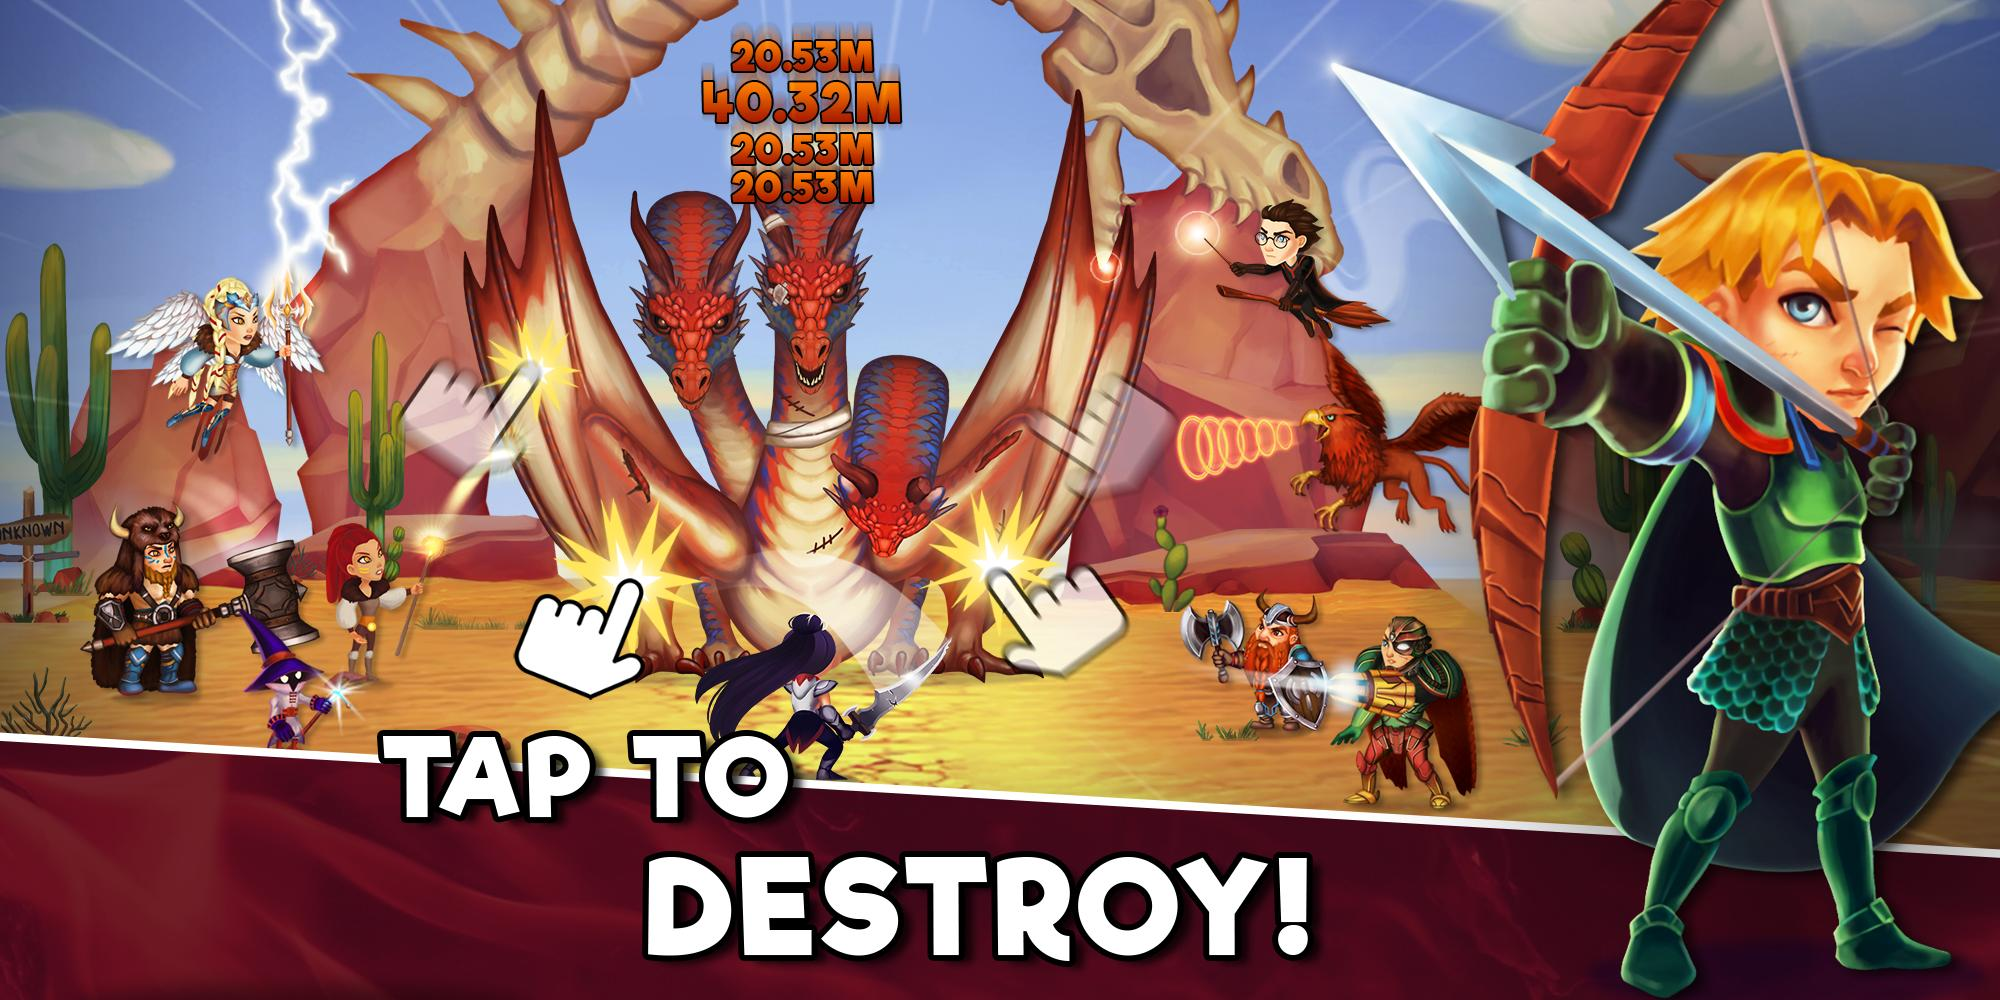 Taps Dragons - Clicker Heroes Fantasy Idle RPG for Android